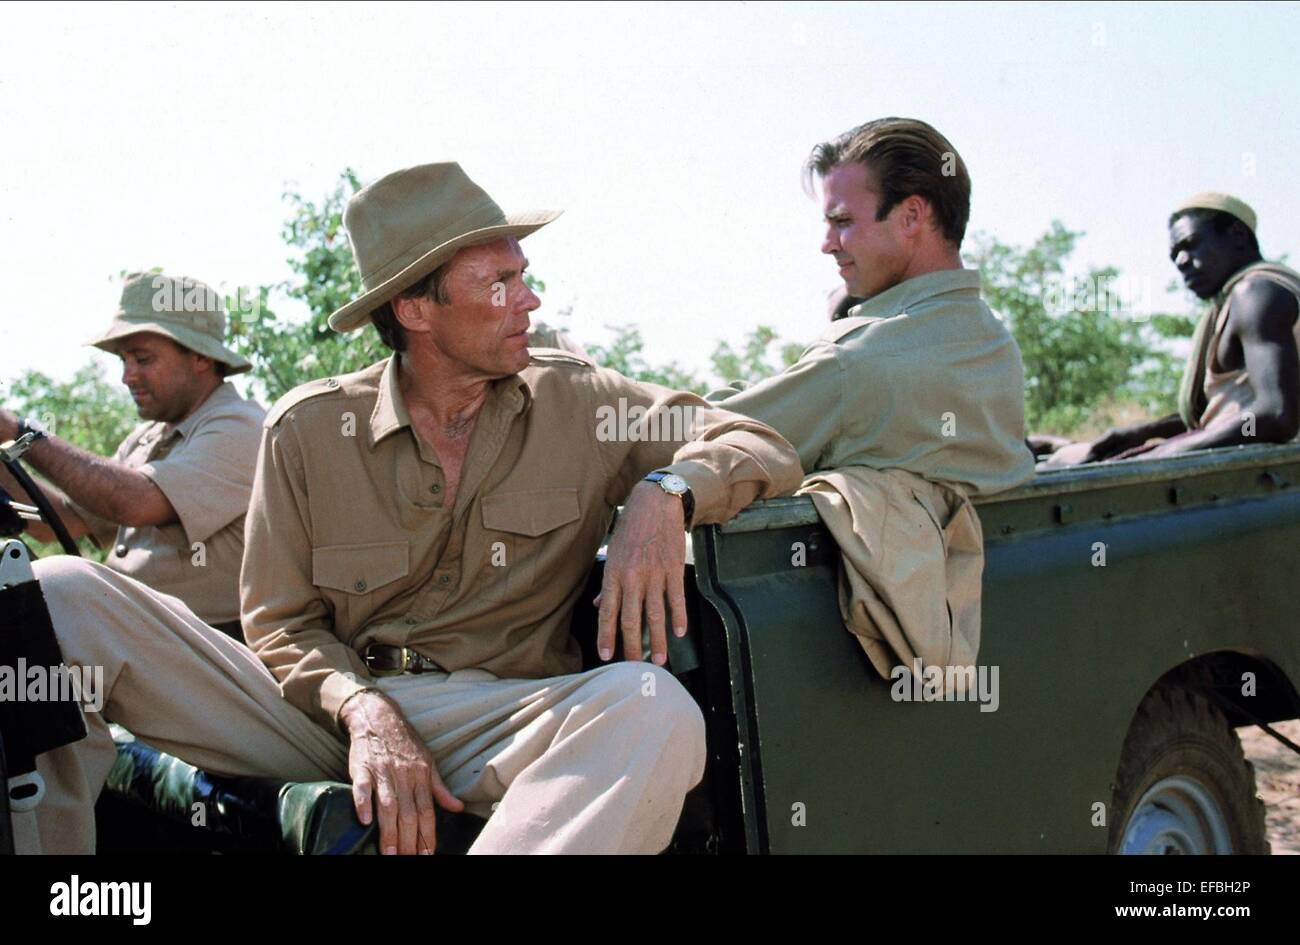 white b j stock photos white b j stock images alamy clint eastwood jeff fahey boy mathias chuma white hunter black heart 1990